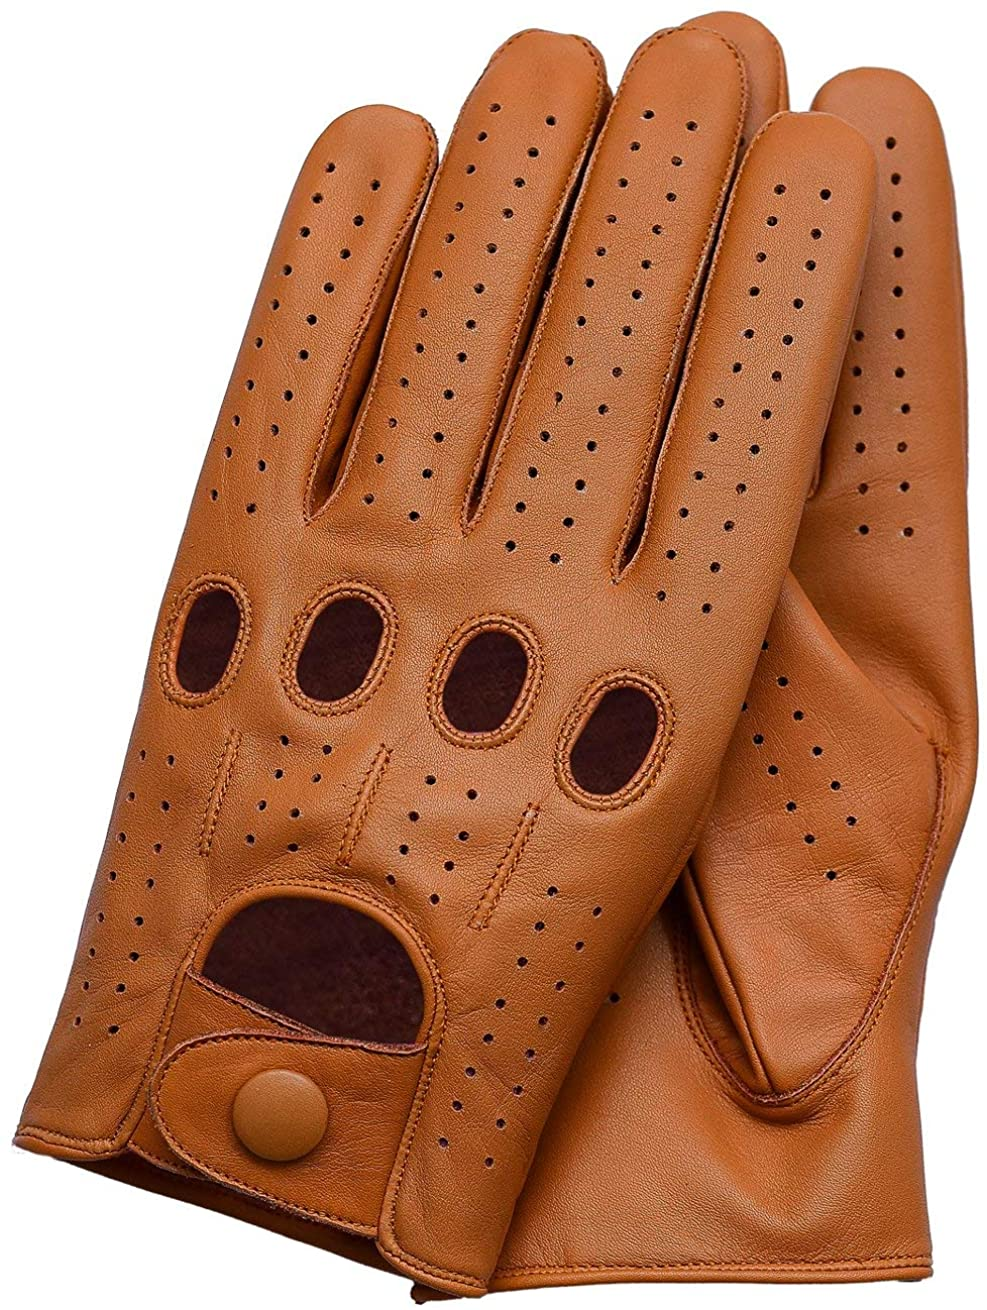 Riparo Women's Unlined Leather Driving and Riding Gloves